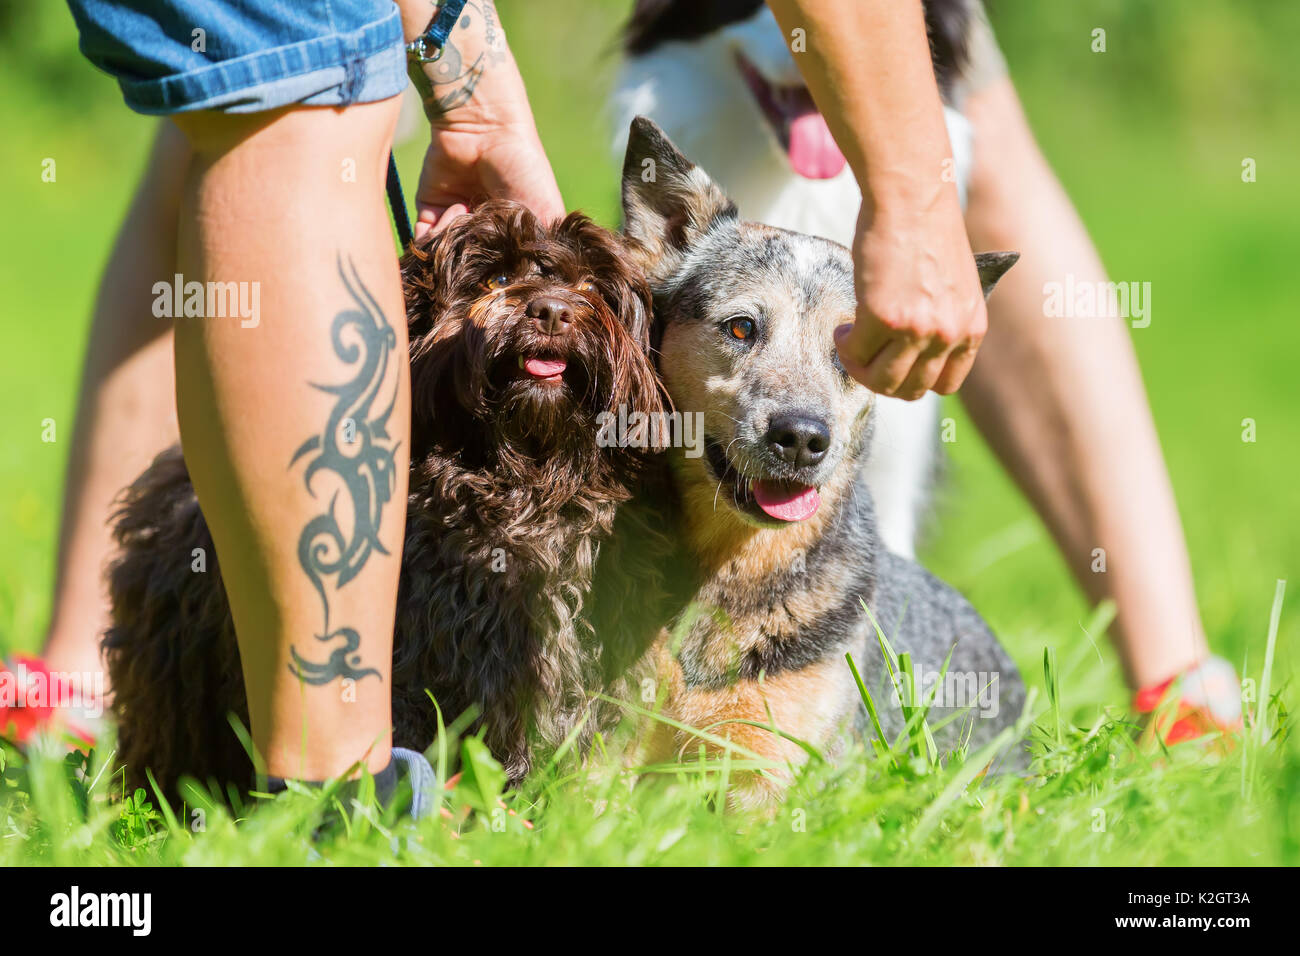 picture of a woman who gives an Australian cattledog and a Havaneser dog a treat Stock Photo